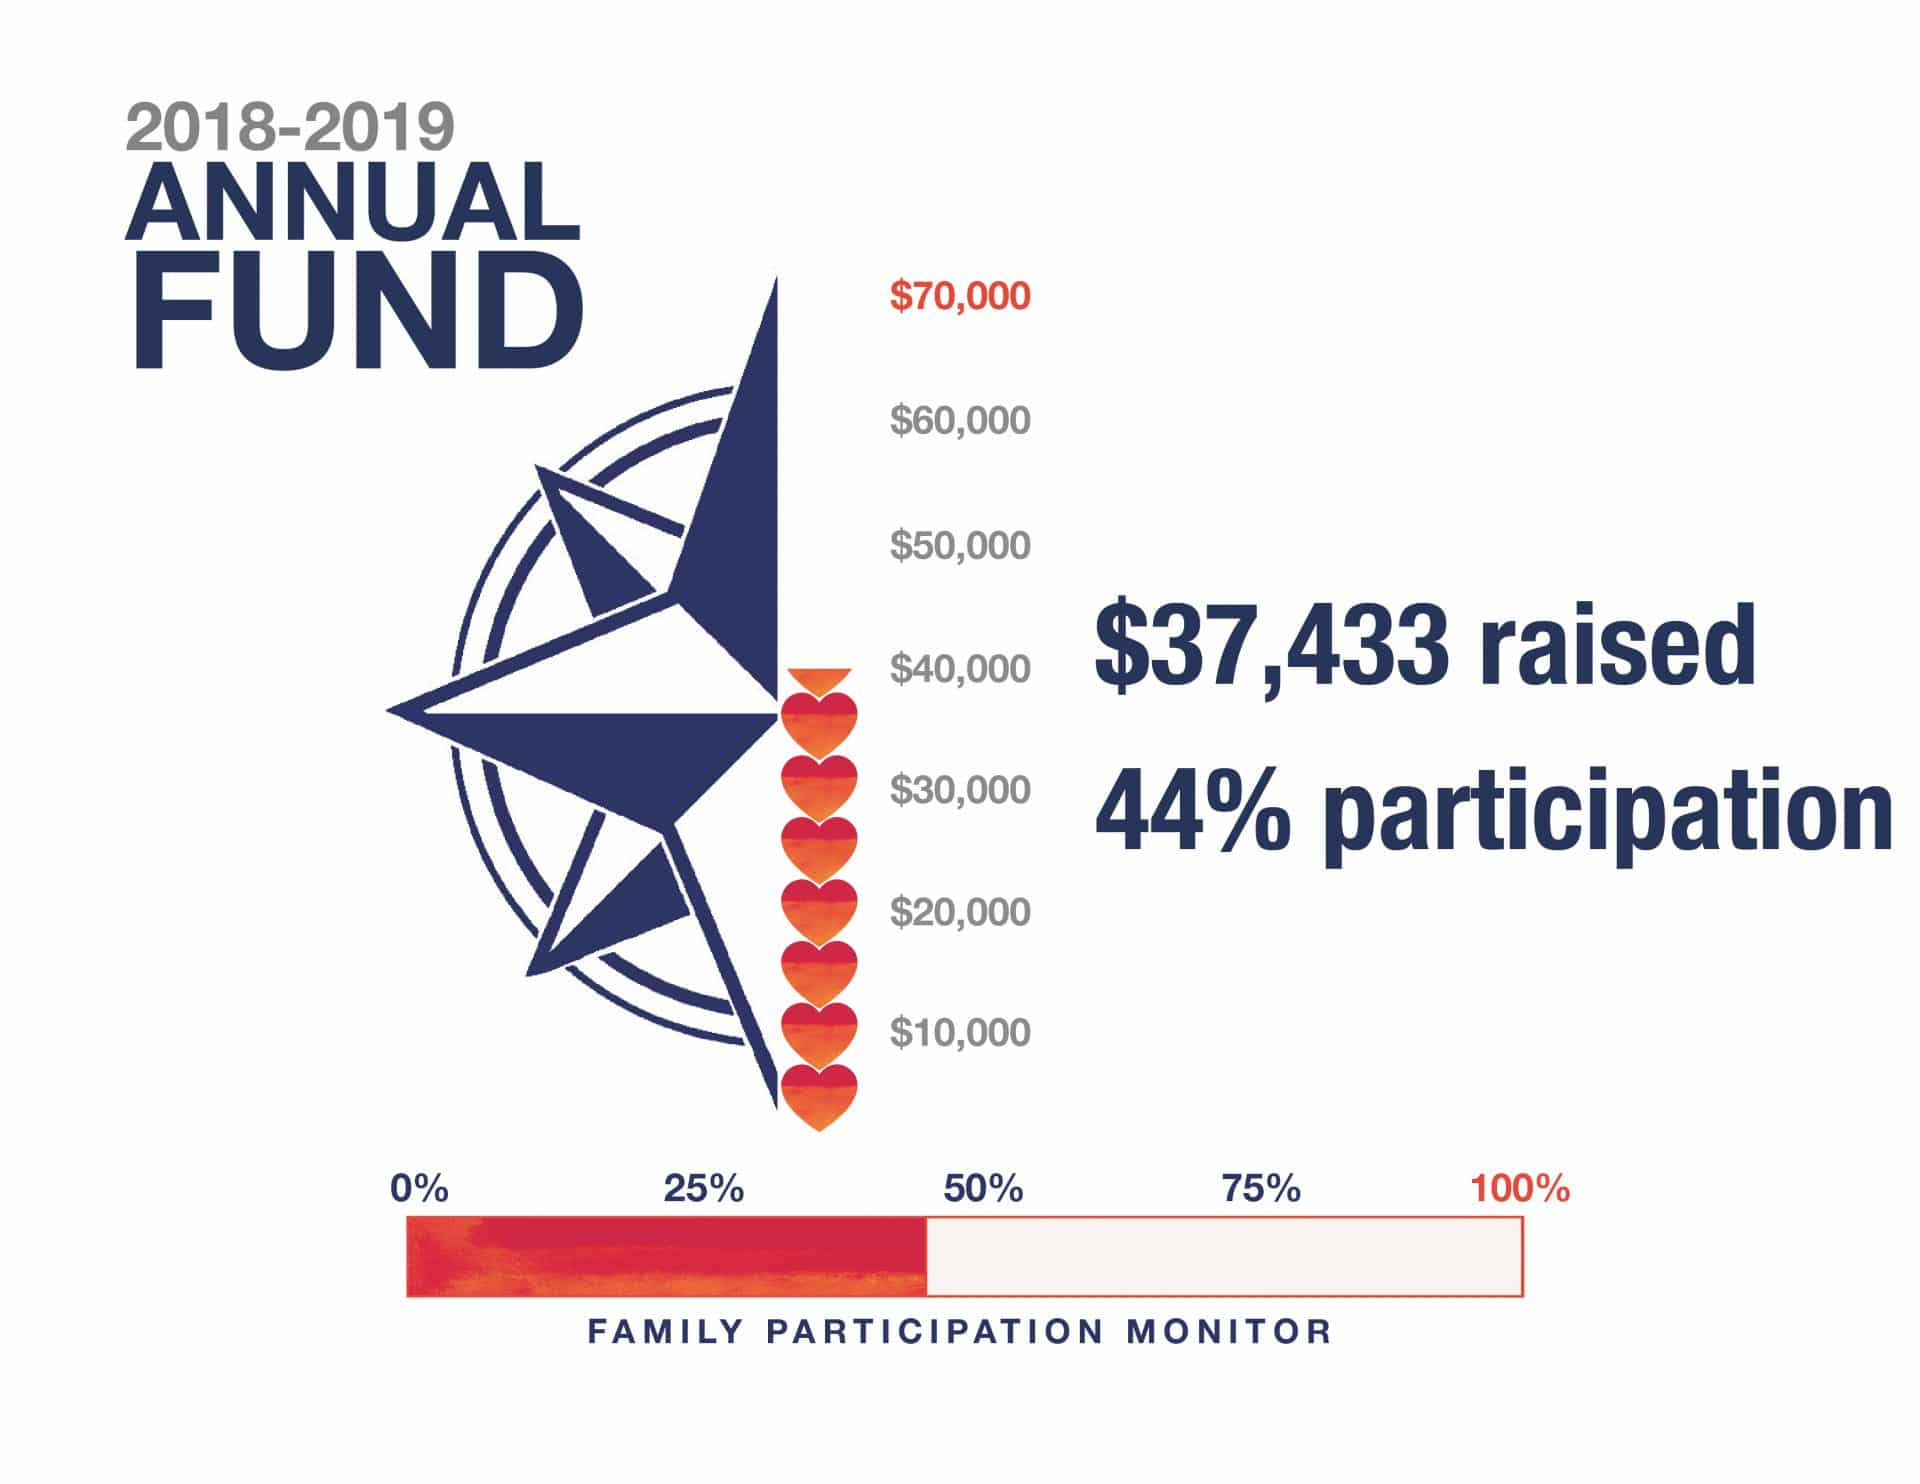 Graphic showing status of Annual Fund donations